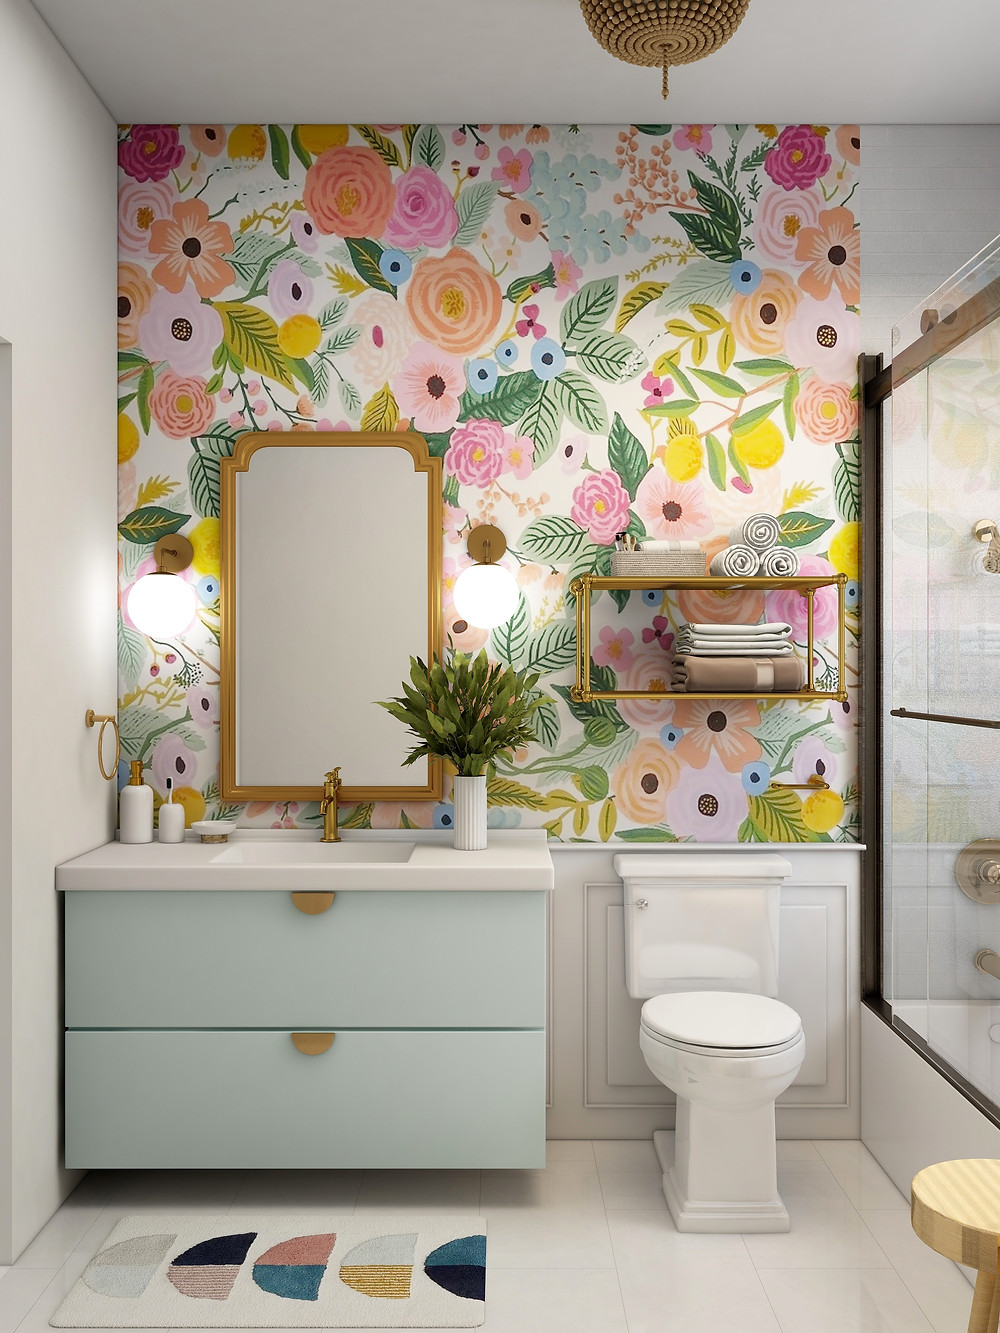 Colors usually add interest in bathrooms. Carpets and wallpapers, also do magics.